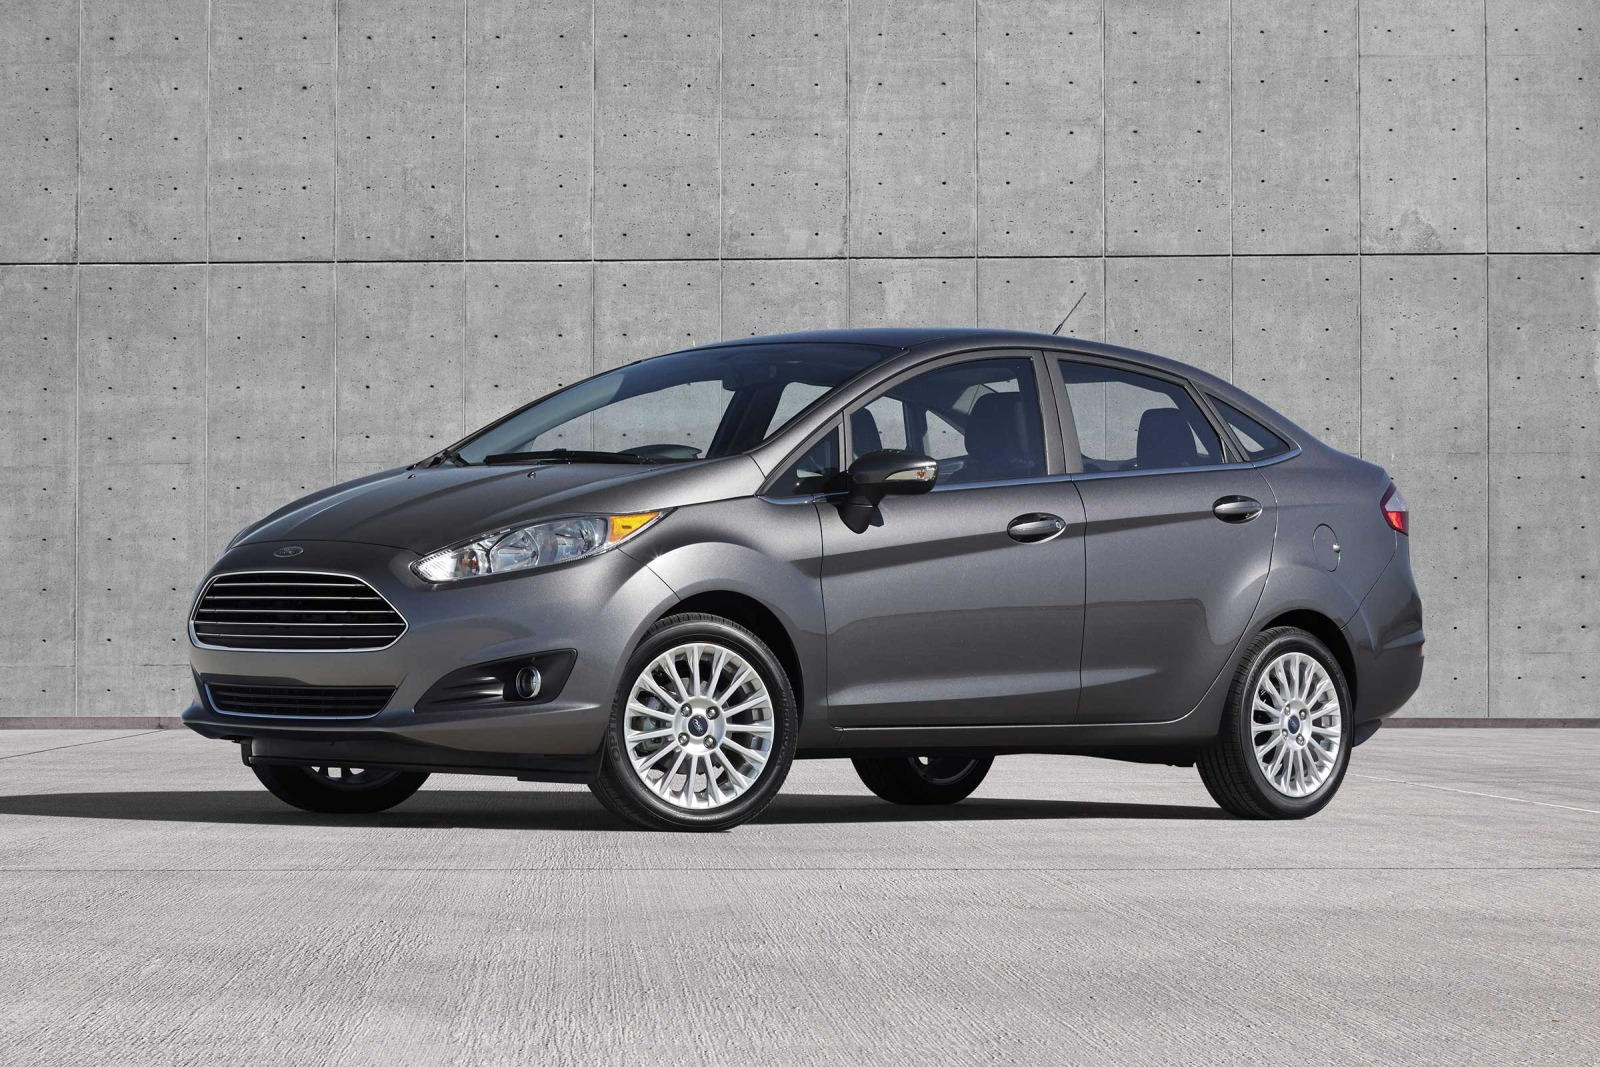 2018 ford fiesta sedan review trims specs and price. Black Bedroom Furniture Sets. Home Design Ideas